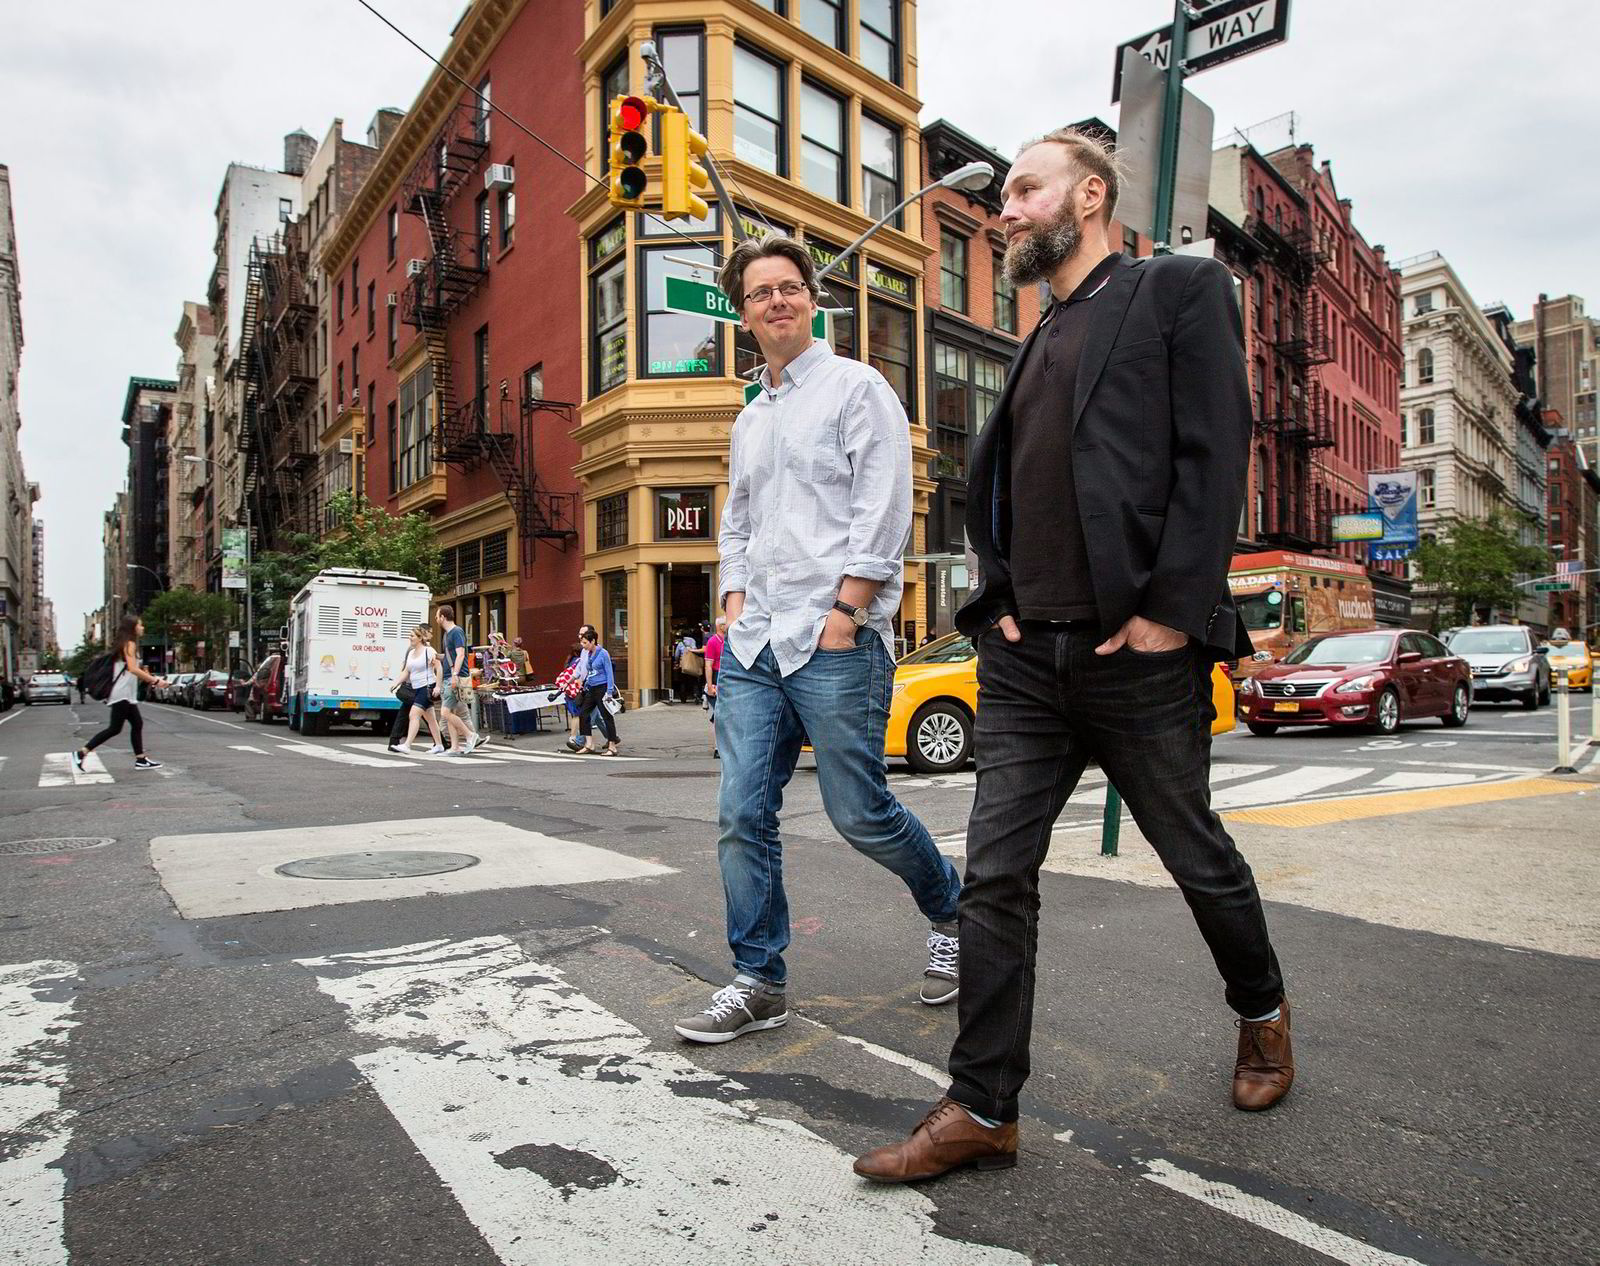 Managing director Erik Brataas (left) and colleague Trond Tornes of Phonofile in New York last year on a business trip, around the time Apple Music launched their streaming service. Foto: